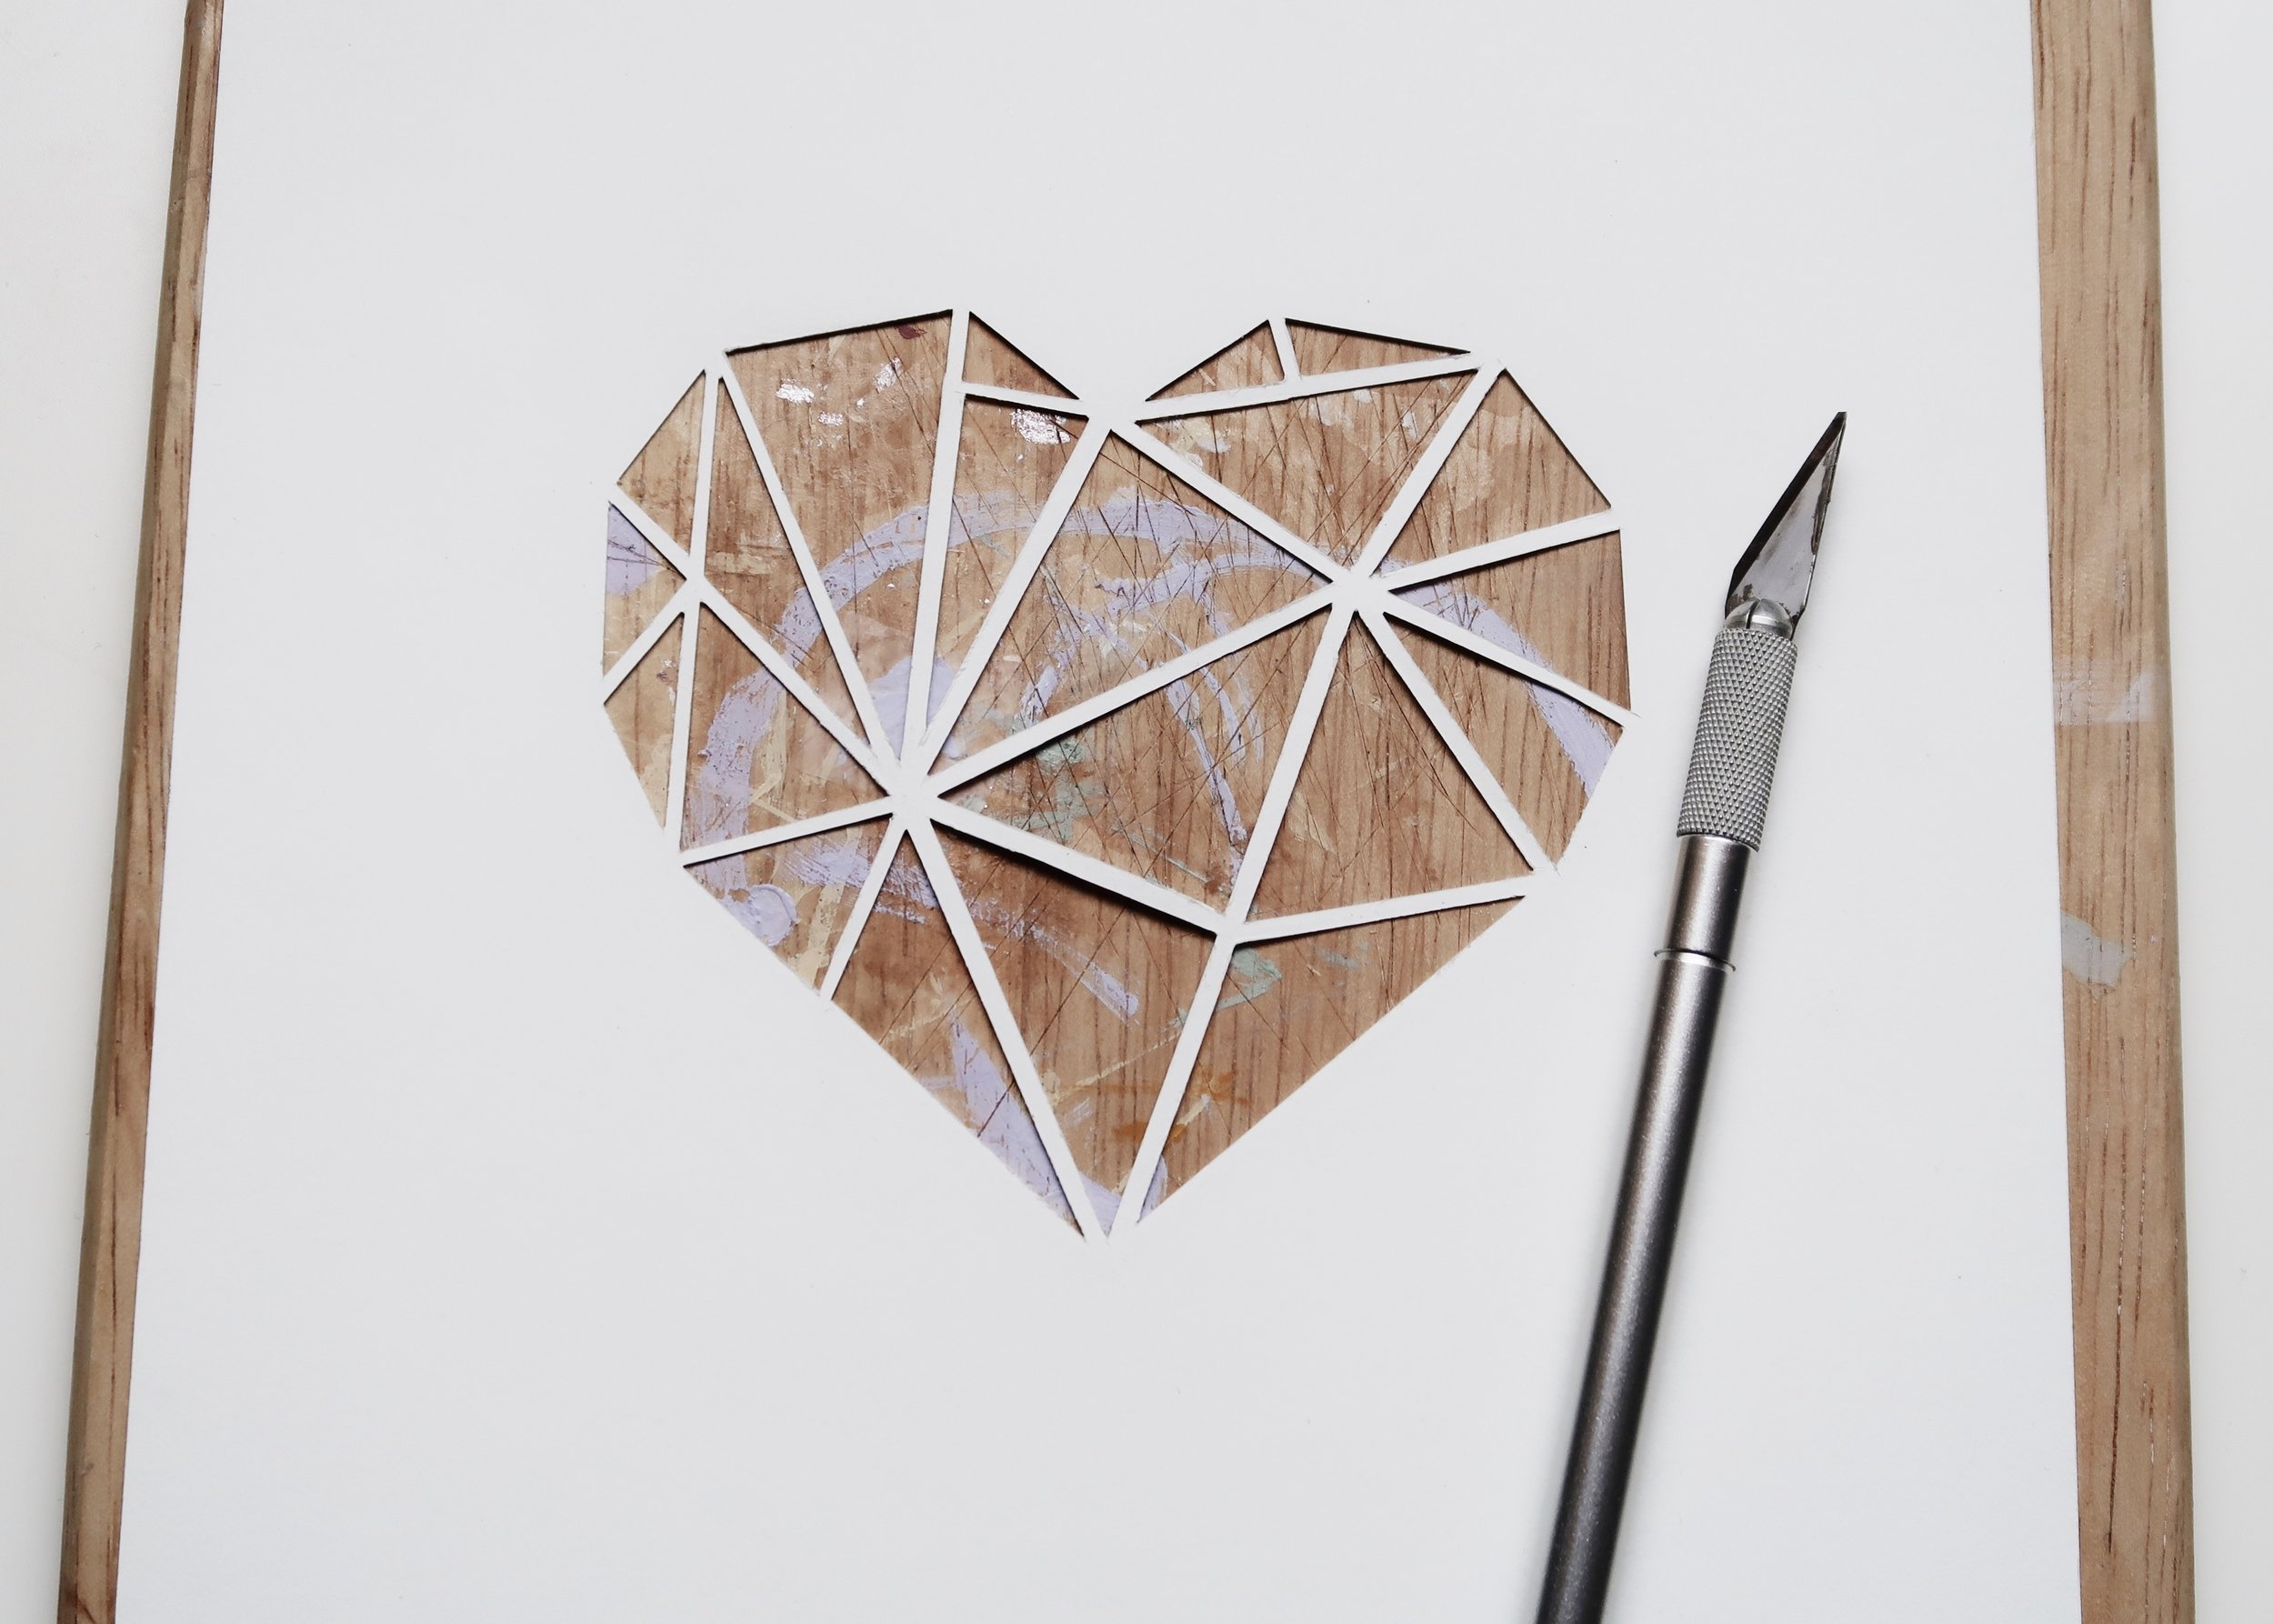 3. - Using scalpel and cutting board (or an old chopping board in my case), cut out each of the triangles within the heart, leaving the pencil lines in tact and connected to one another. The side with the pencil marks on will be the back.